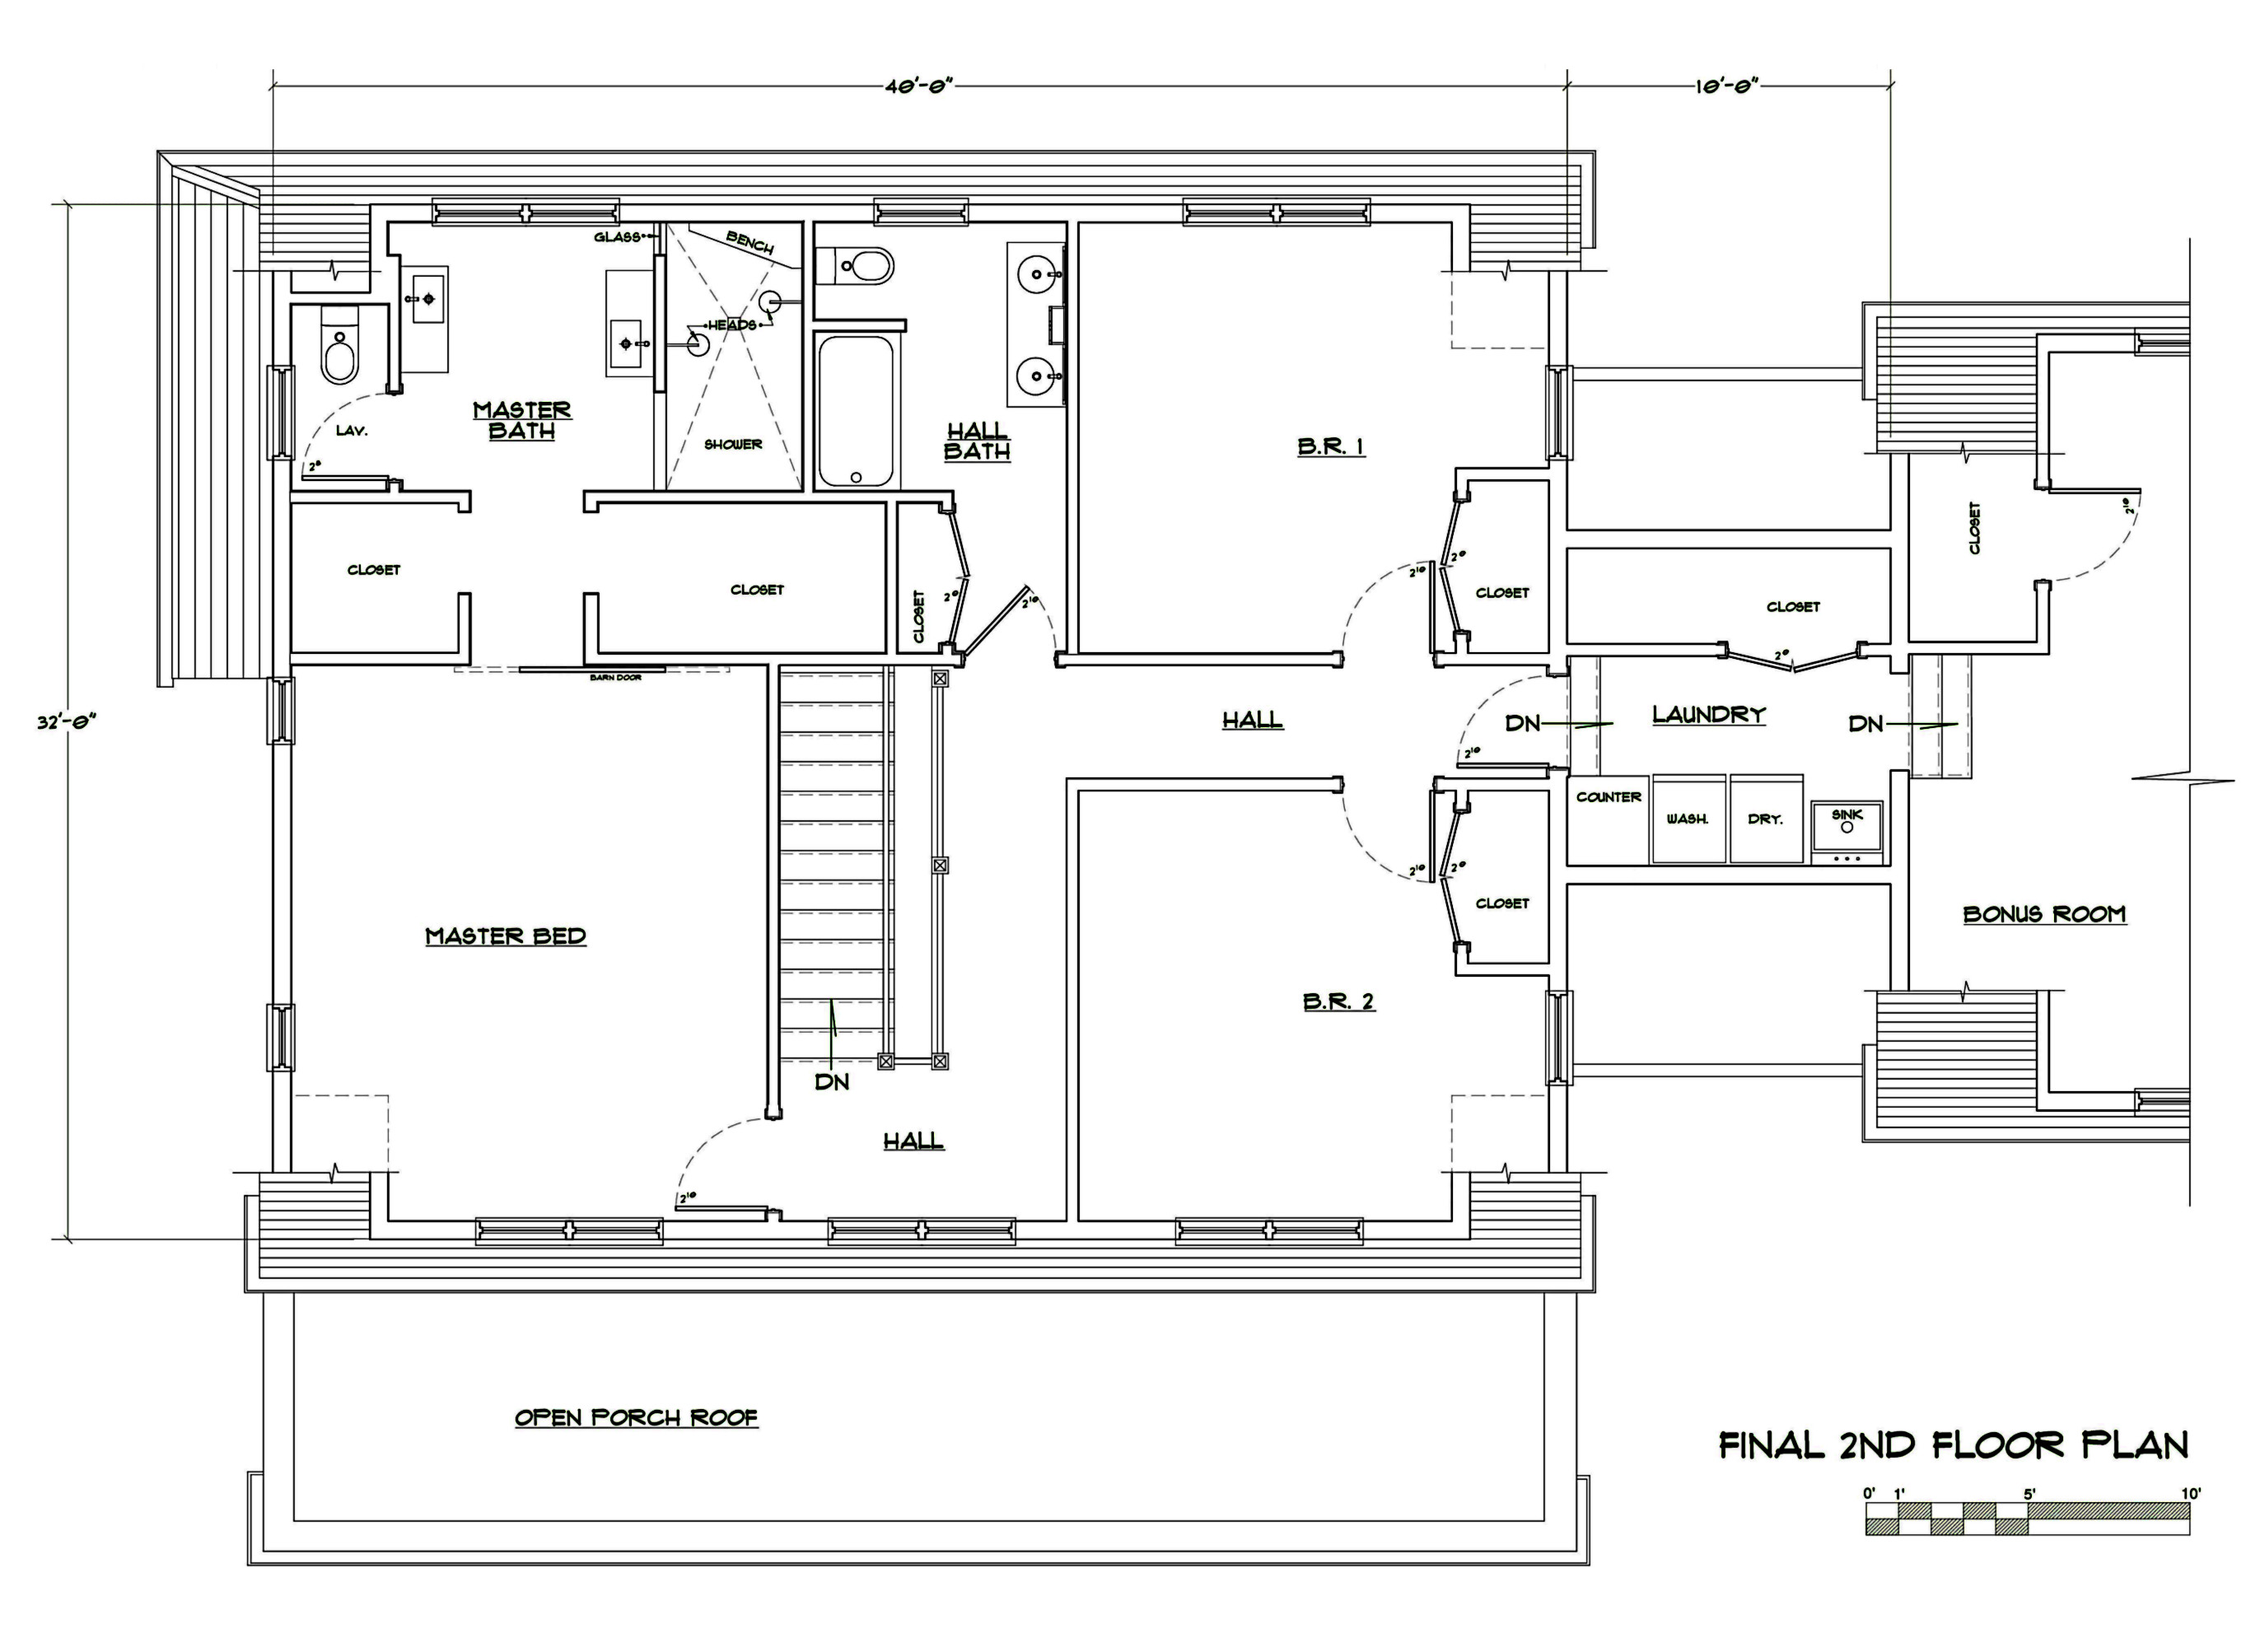 How to customize a spec home floor plan part 2 brad for What is a spec home